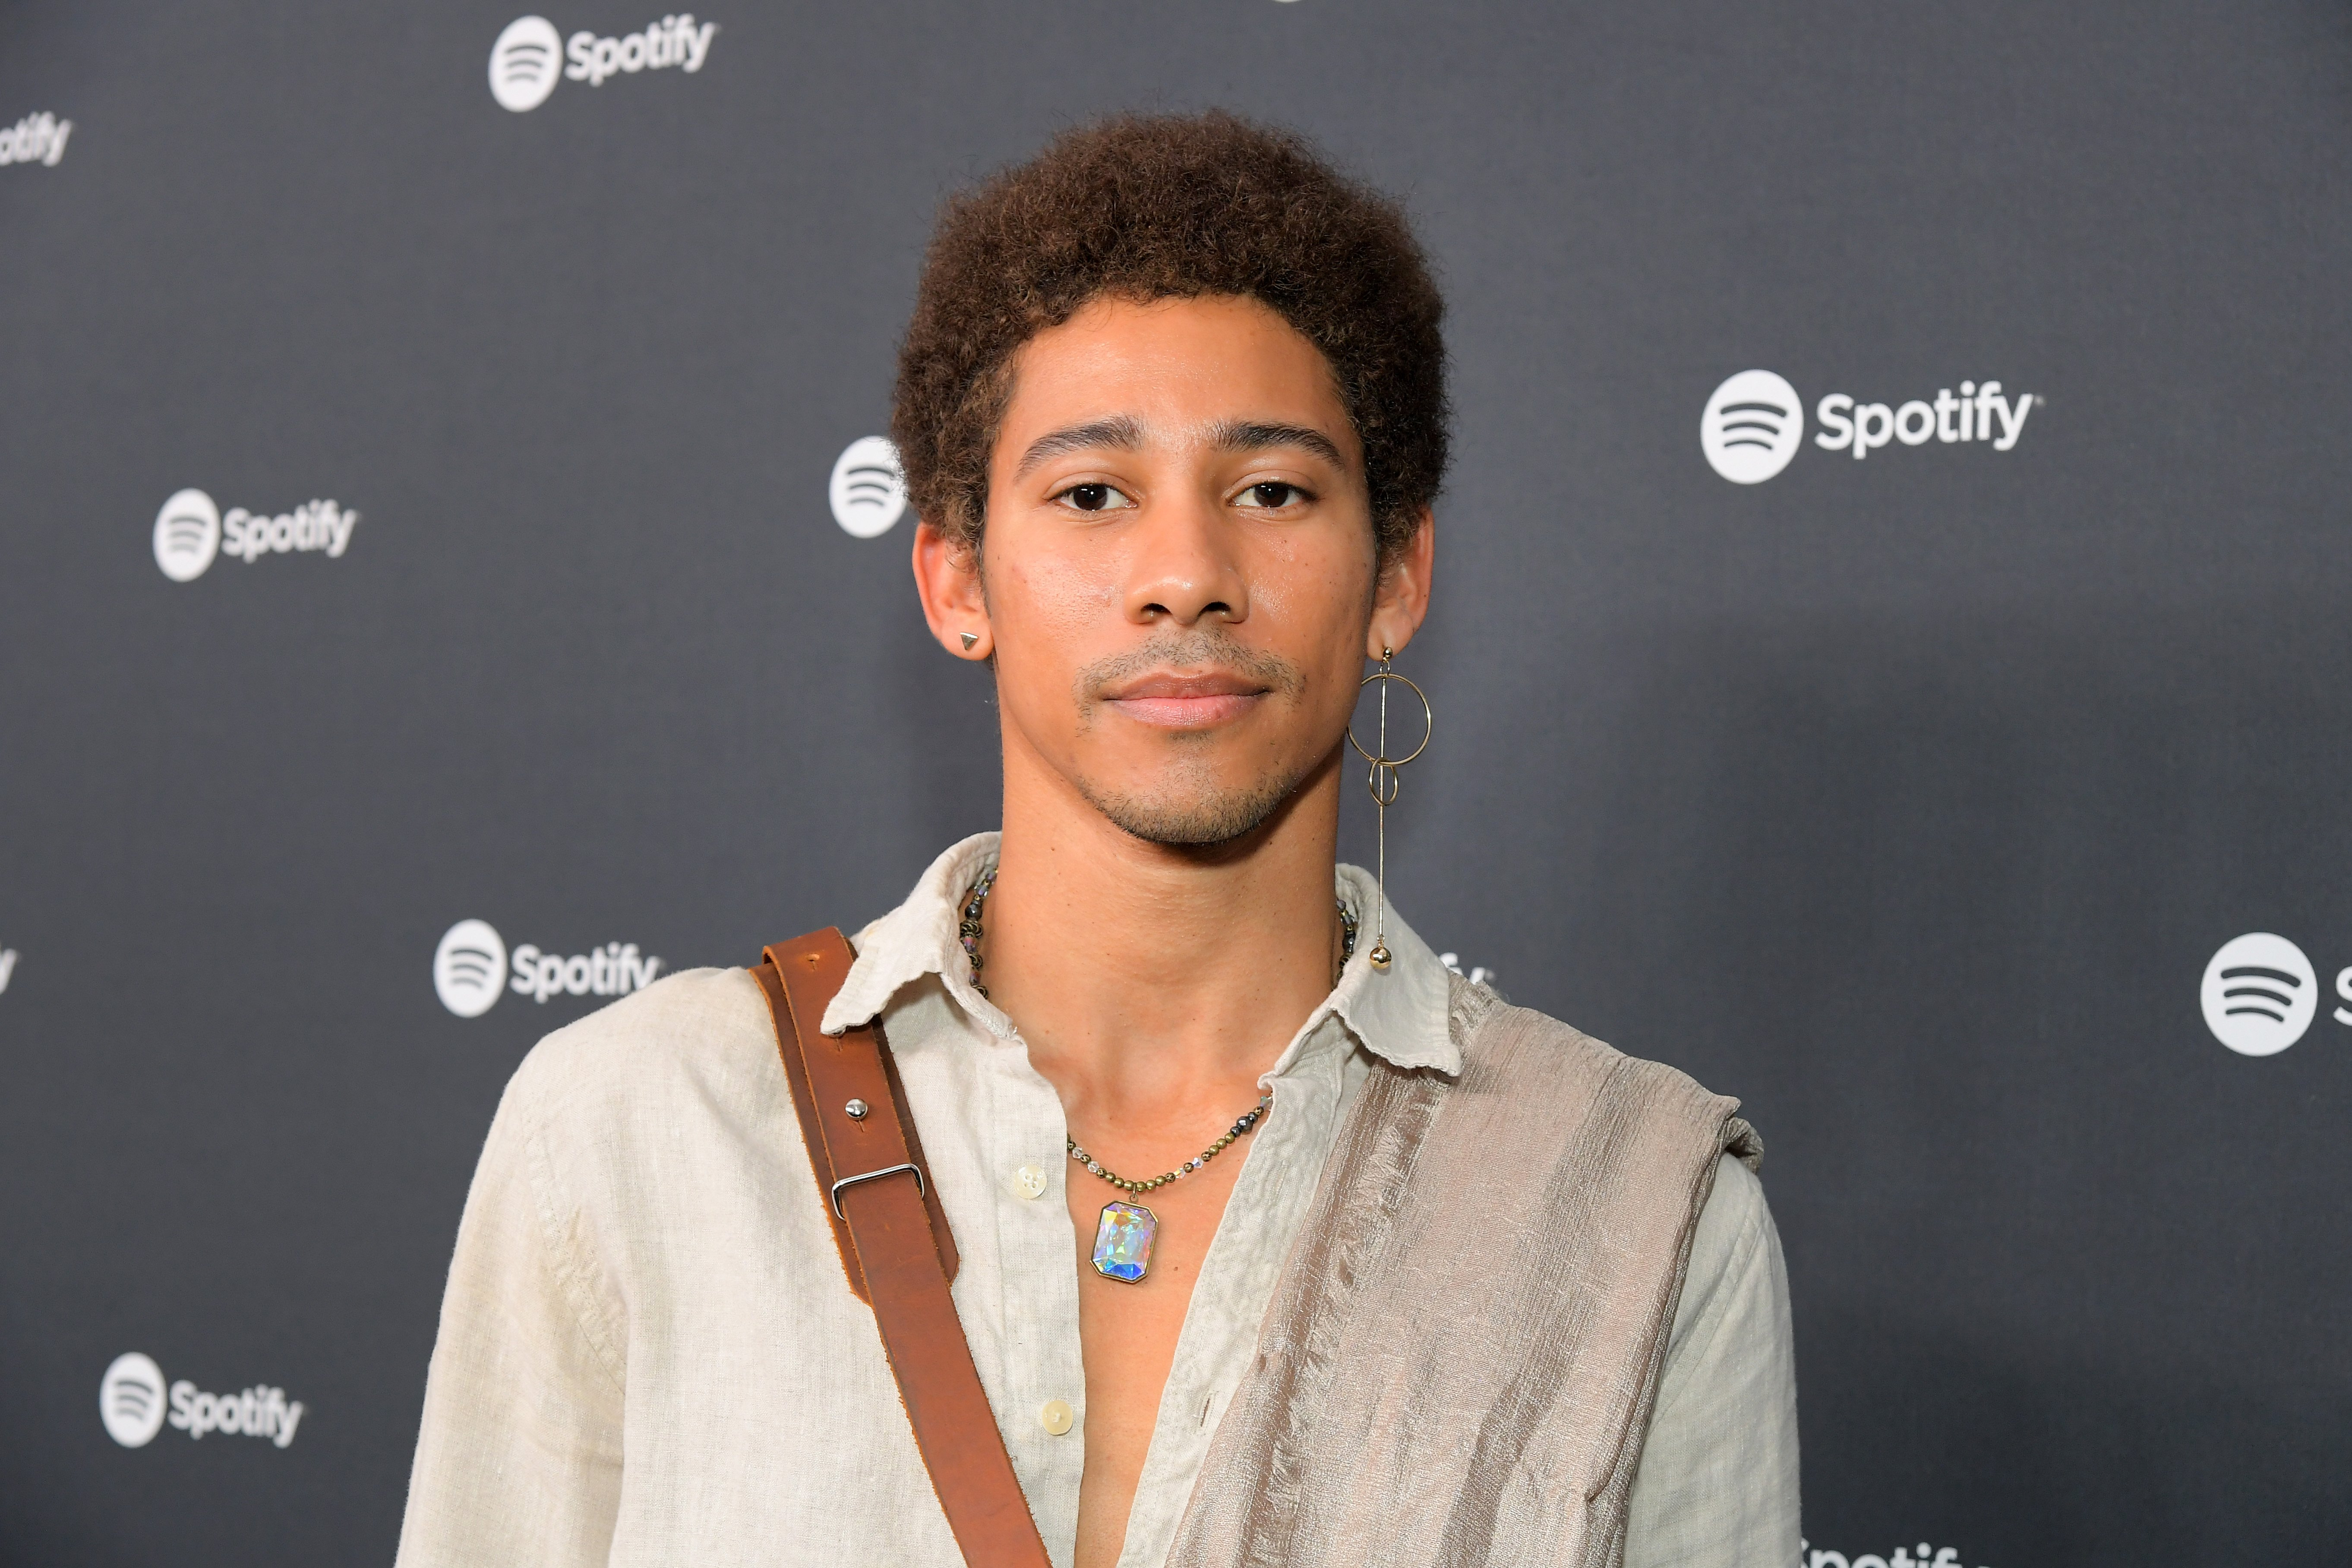 """Keiynan Lonsdale attends Spotify's """"Best New Artist"""" Party at The Lot Studios on January 23, 2020 in Los Angeles, California. 